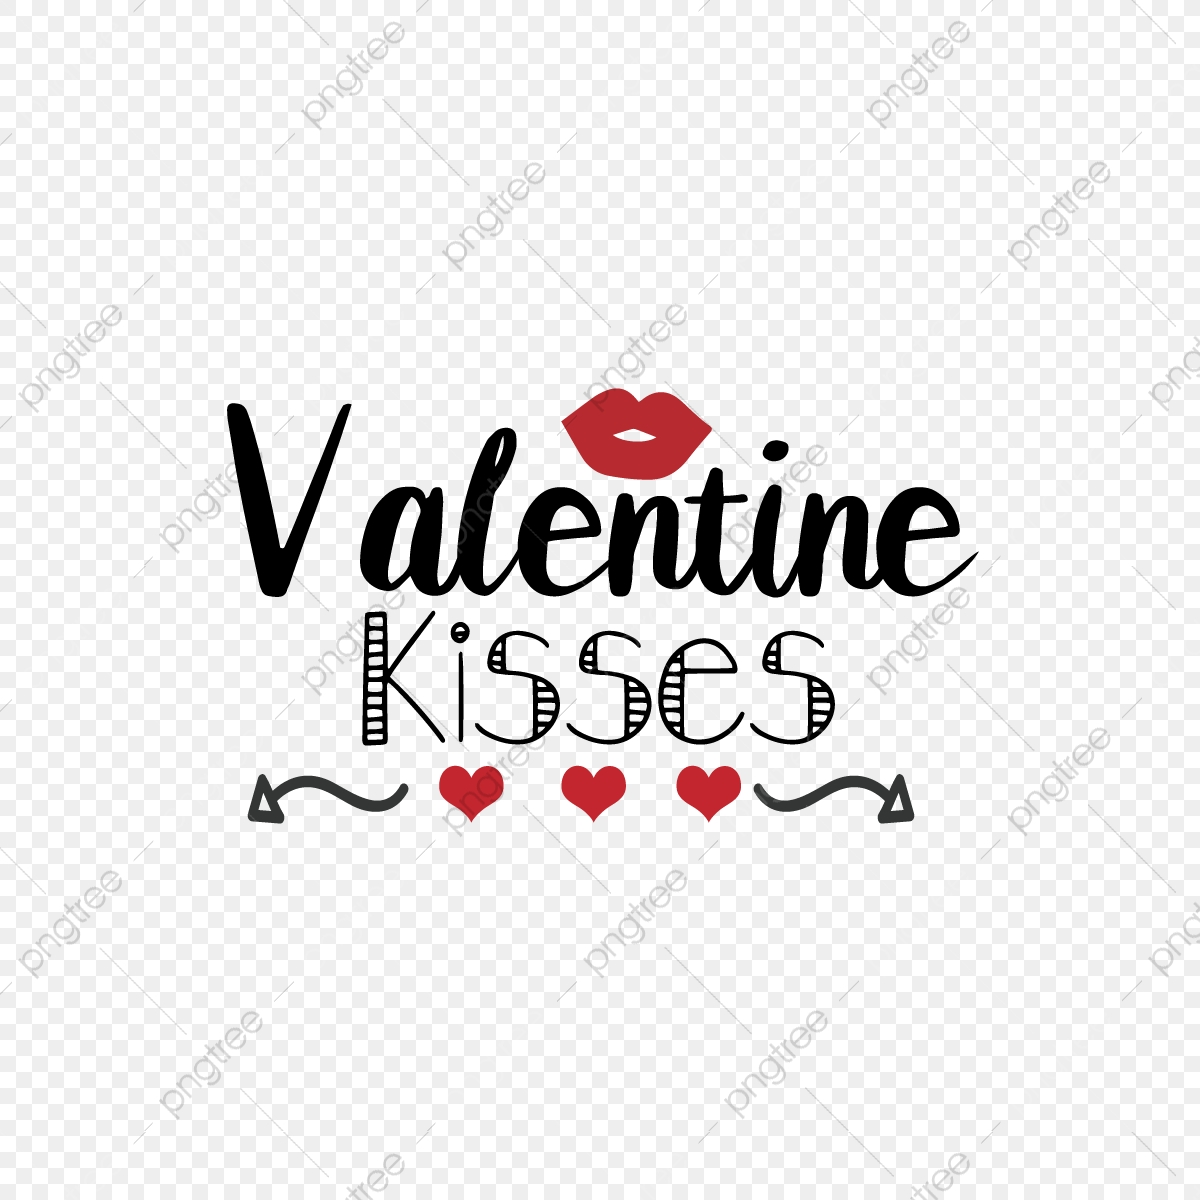 Kissing Png Images Vector And Psd Files Free Download On Pngtree